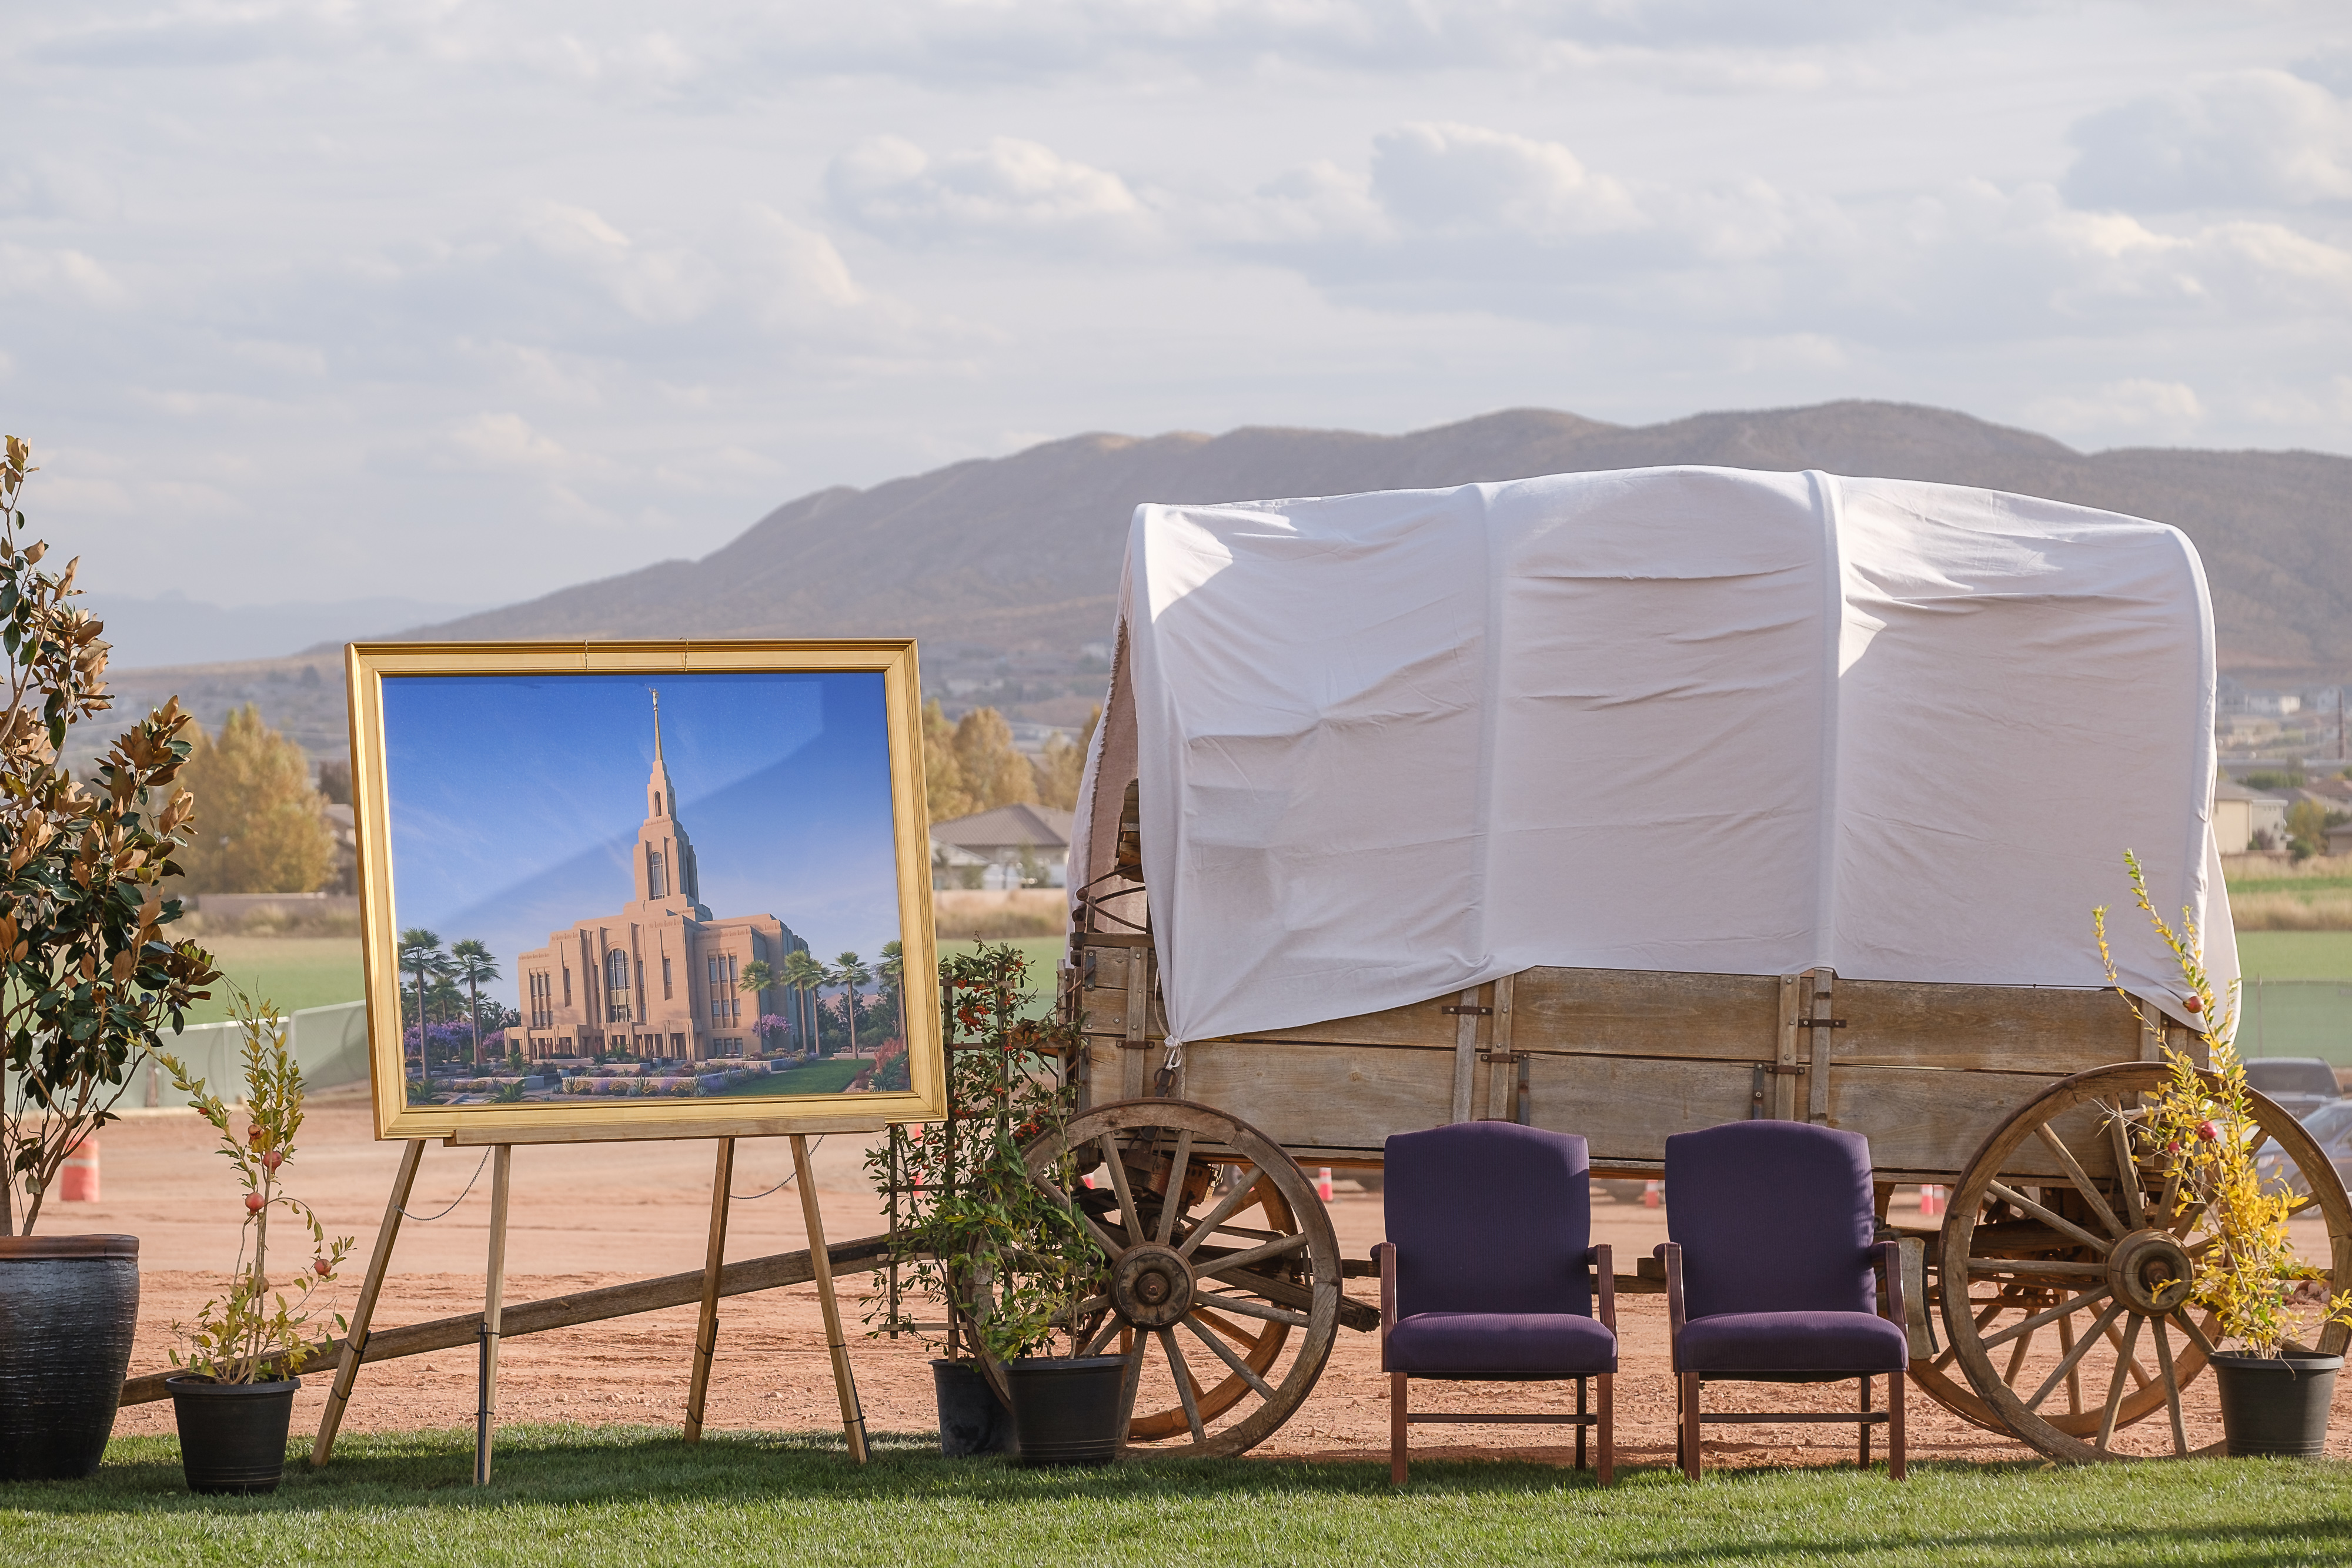 A covered wagon and a rendering of the Red Cliffs Utah Temple of The Church of Jesus Christ of Latter-day Saints.